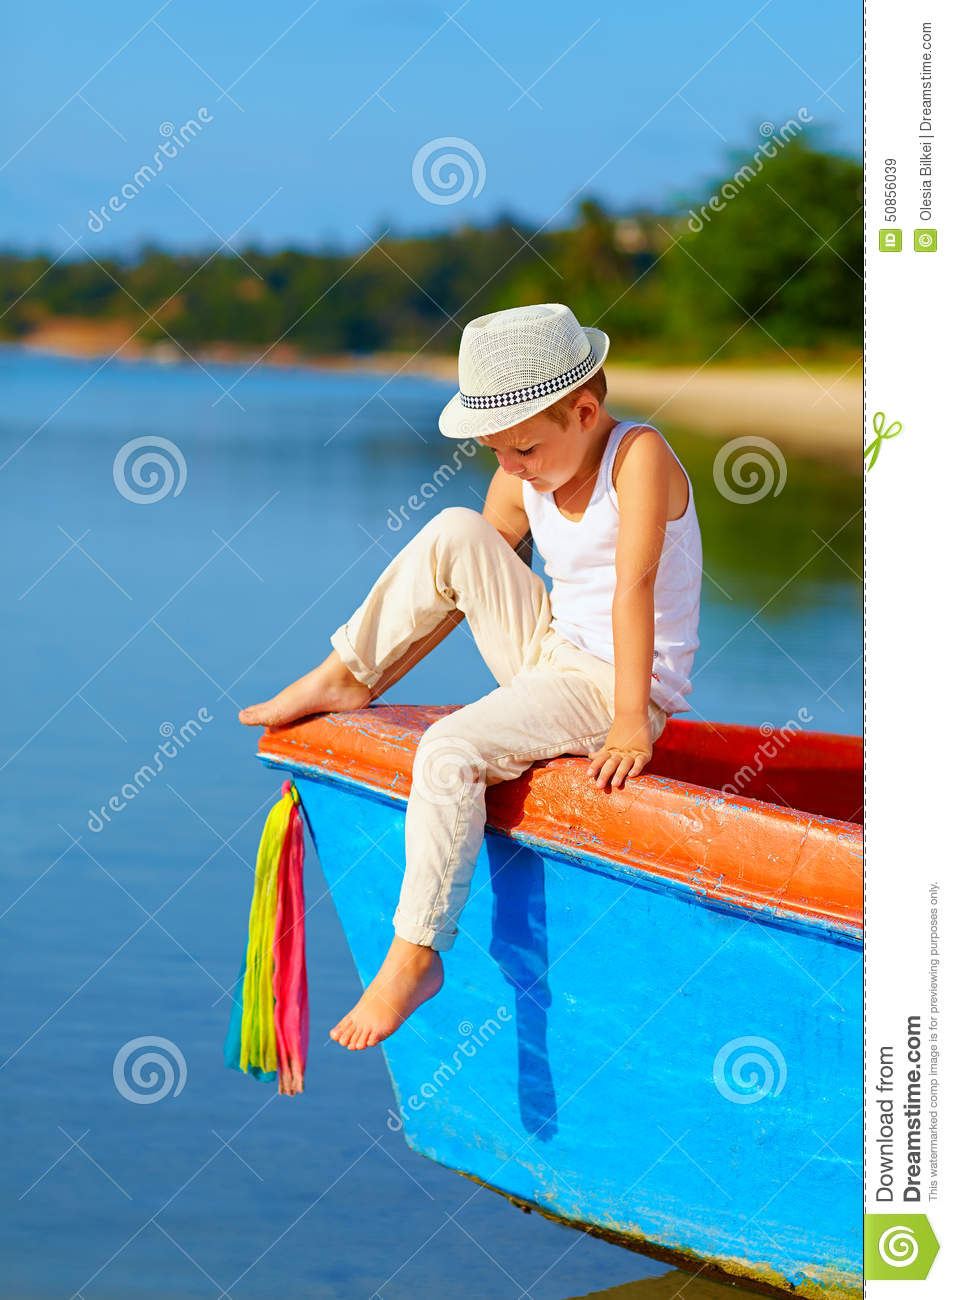 Cute Kid, Boy Sitting On The Bow Of A Boat Stock Image - Image of lifestyle, beach: 50856039